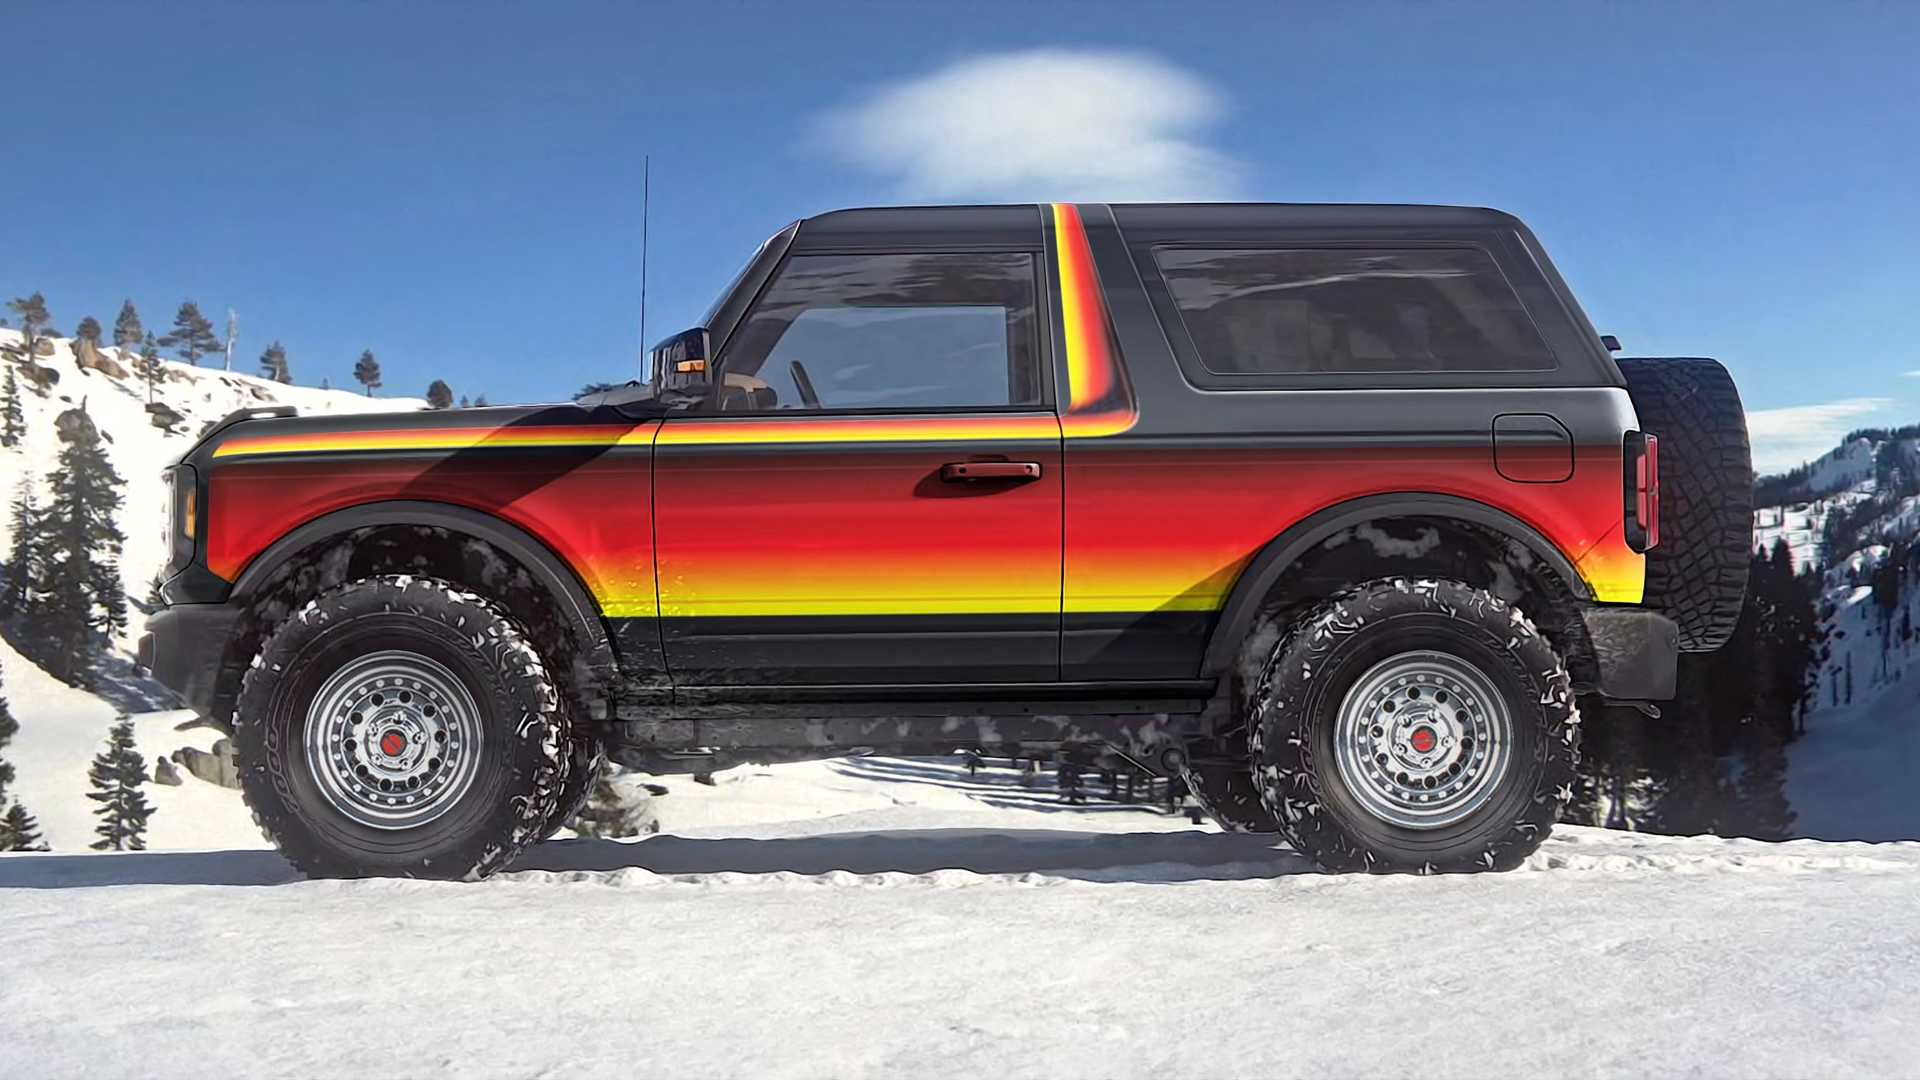 Retro Ford Bronco Renderings Give New Off-Roader Vintage Graphics